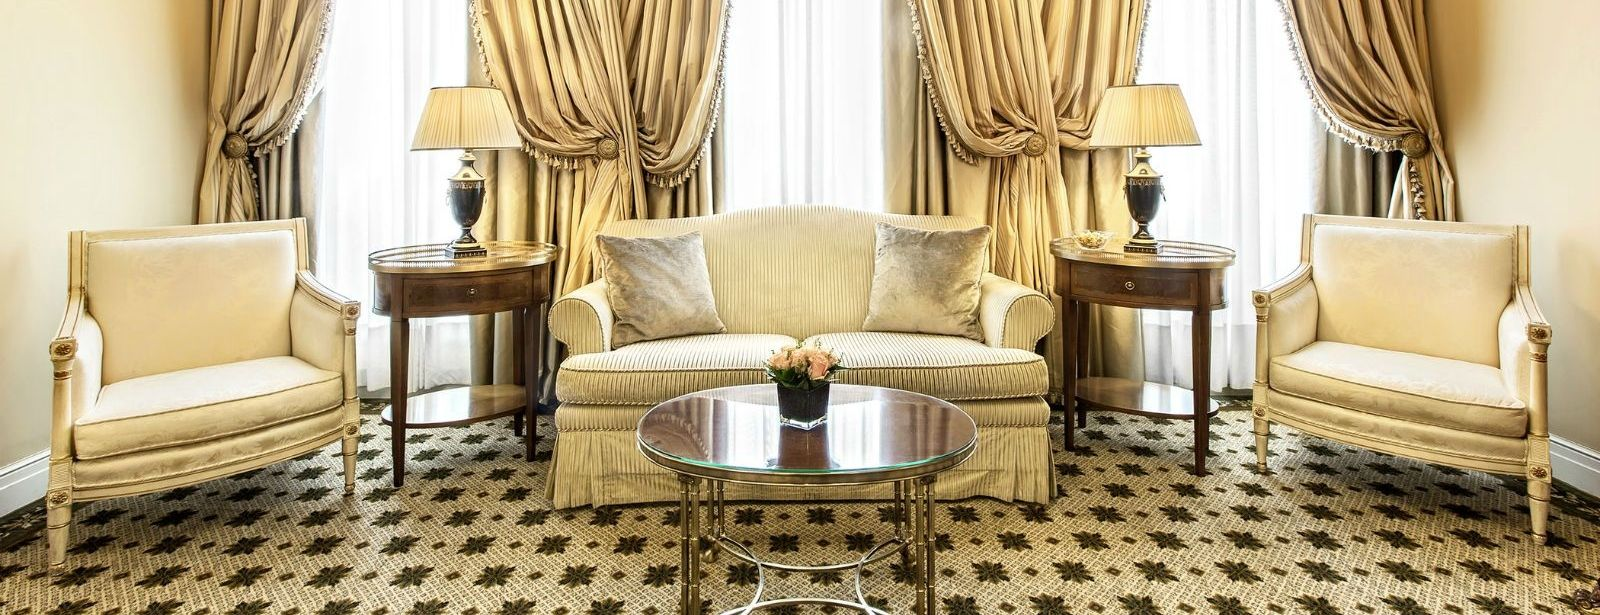 Grand Suites at Hotel Grande Bretagne, a Luxury Collection Hotel Athens Greece